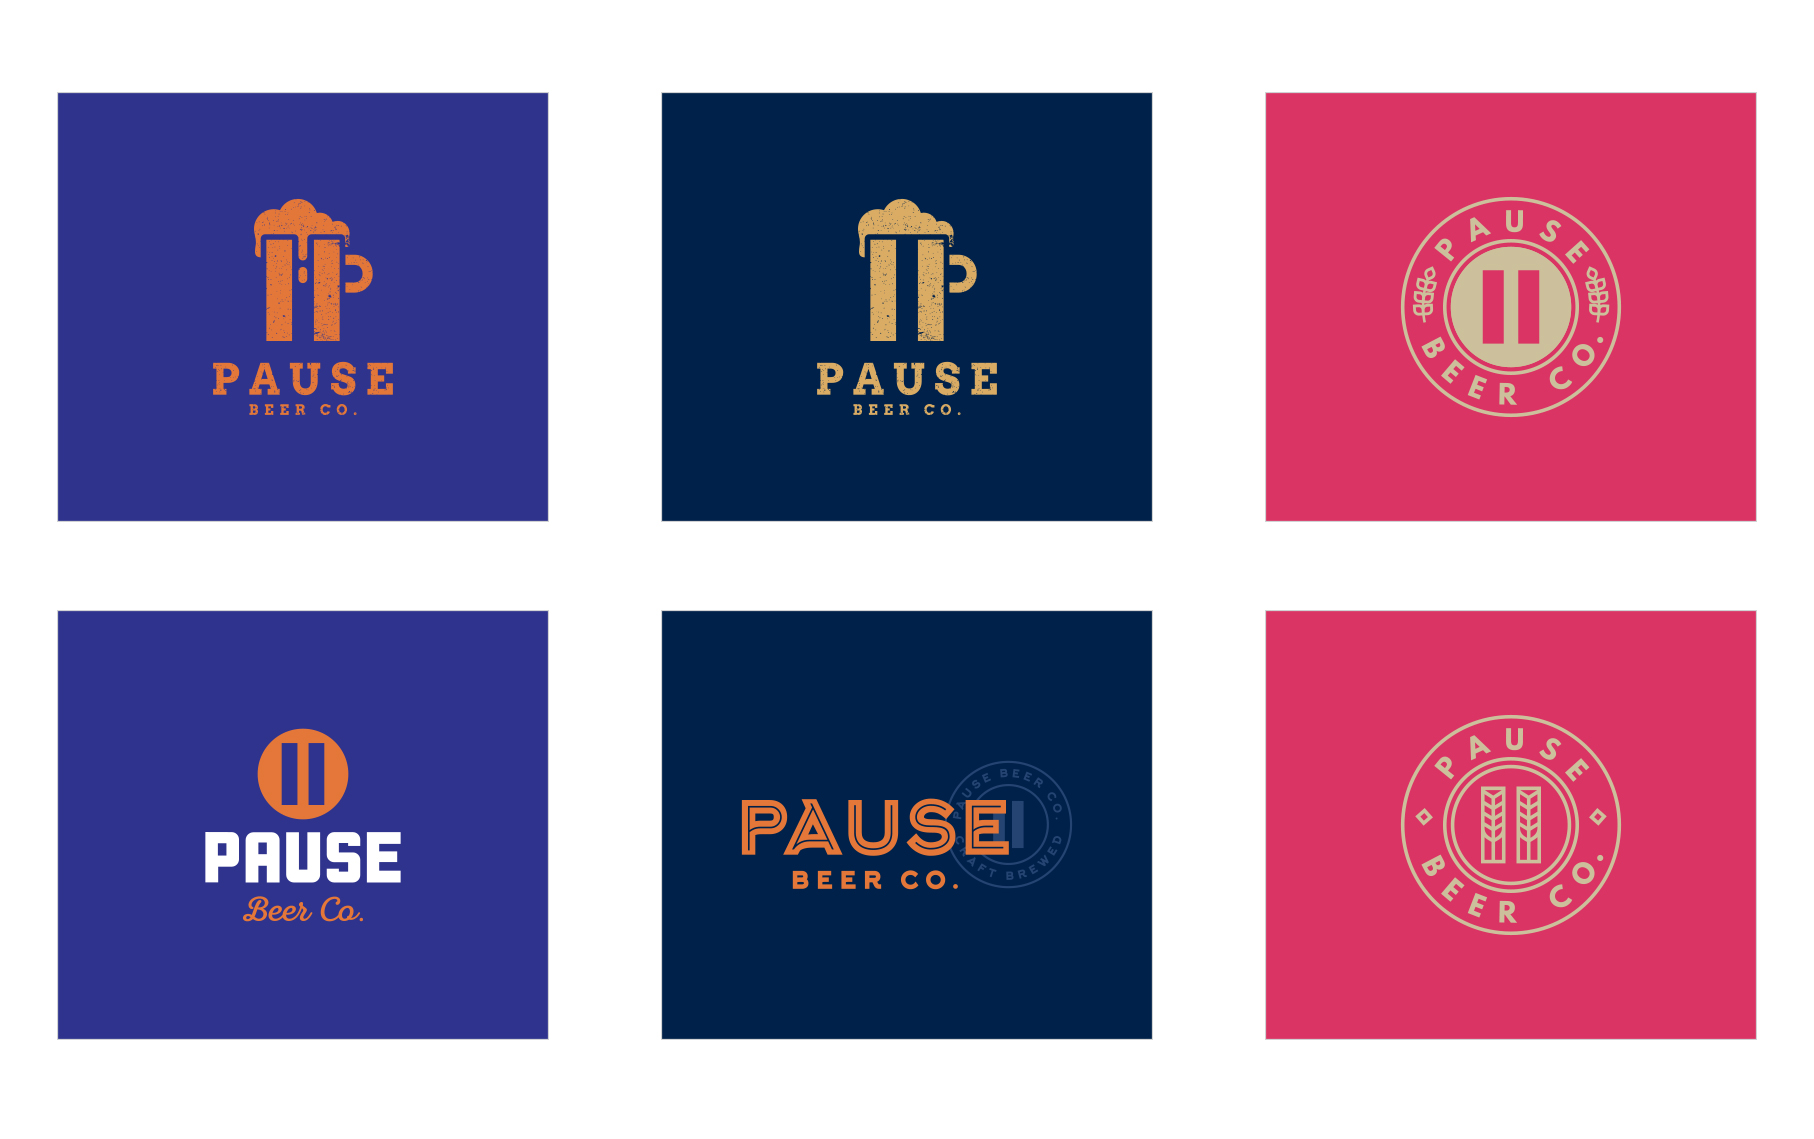 pause-beer-co-case-study-corporate-identity-design-logo-concepts.jpg